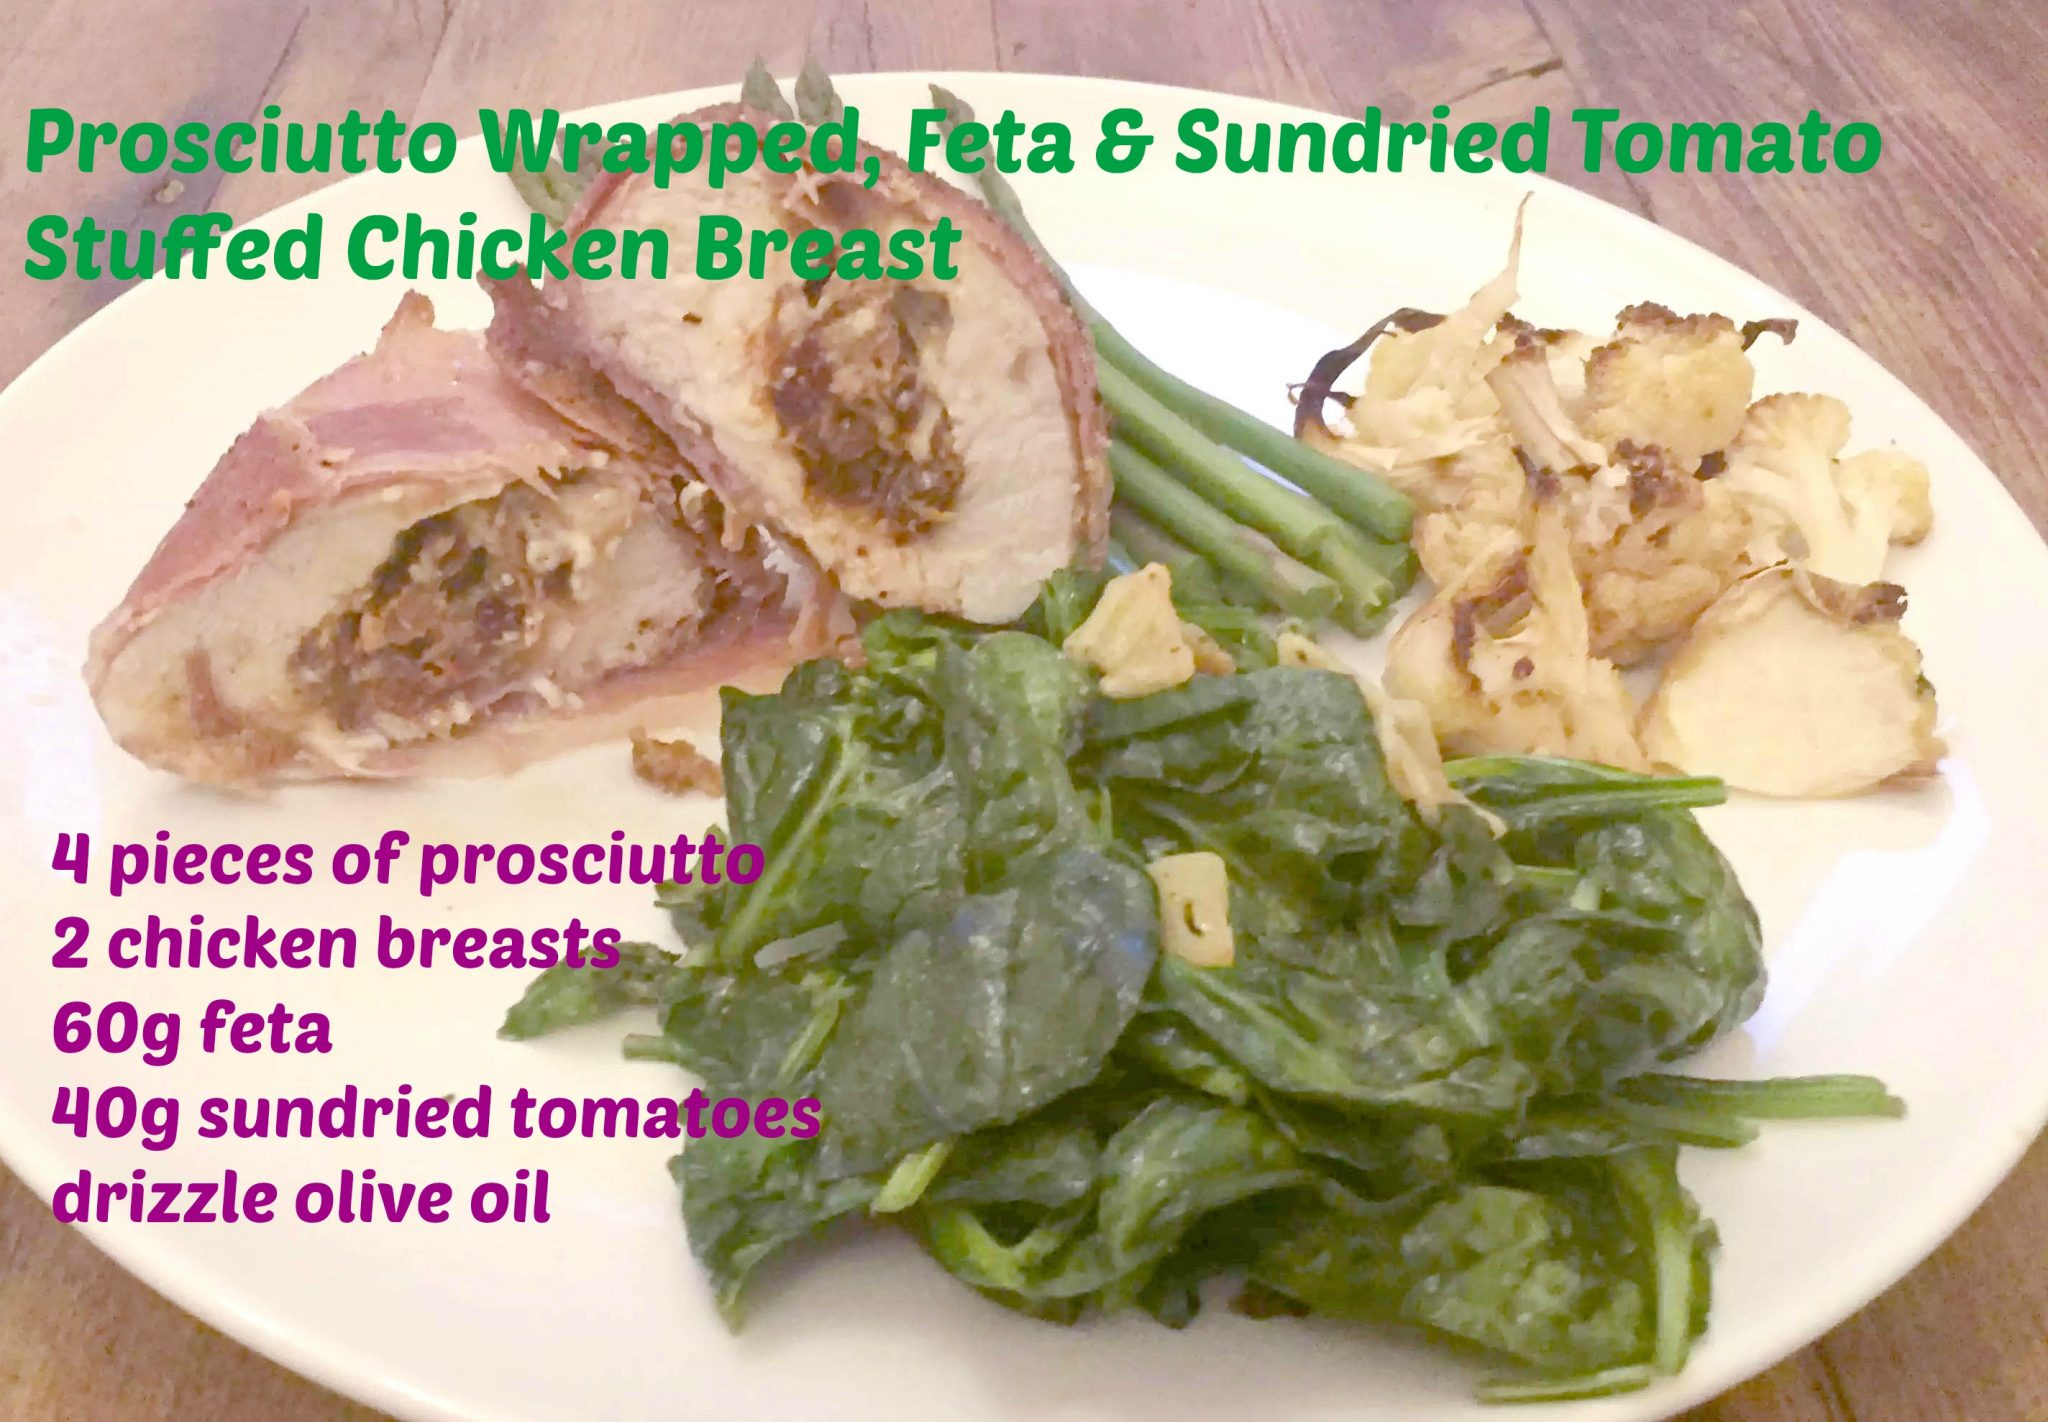 Feta Sundried Tomato Stuffed Chicken Recipe Prosciutto